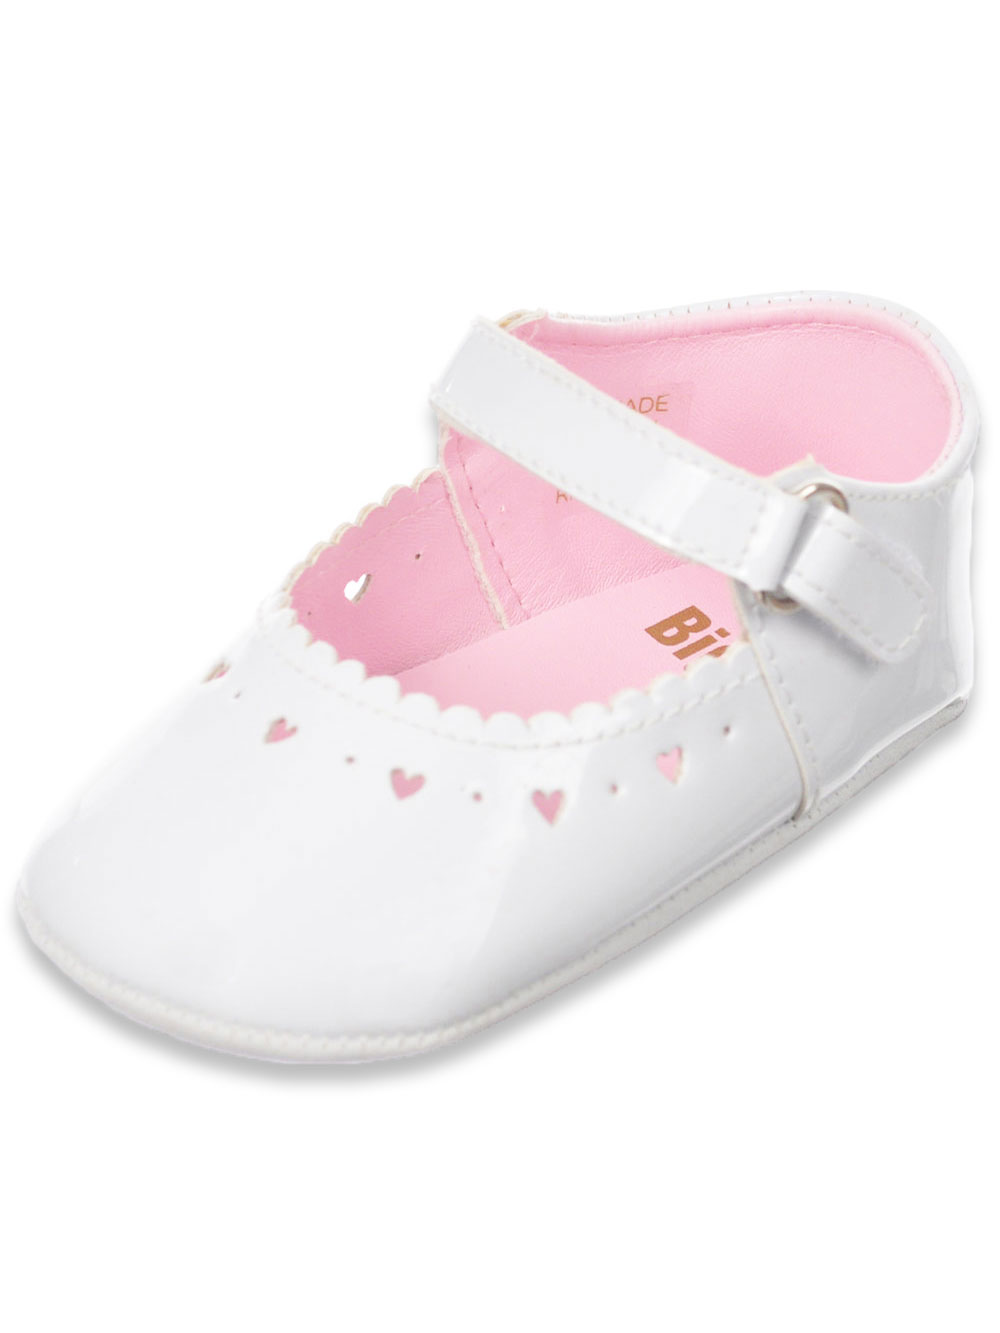 Big Oshi Baby Girls' Mary Jane Baby Shoes - white, 3 infant